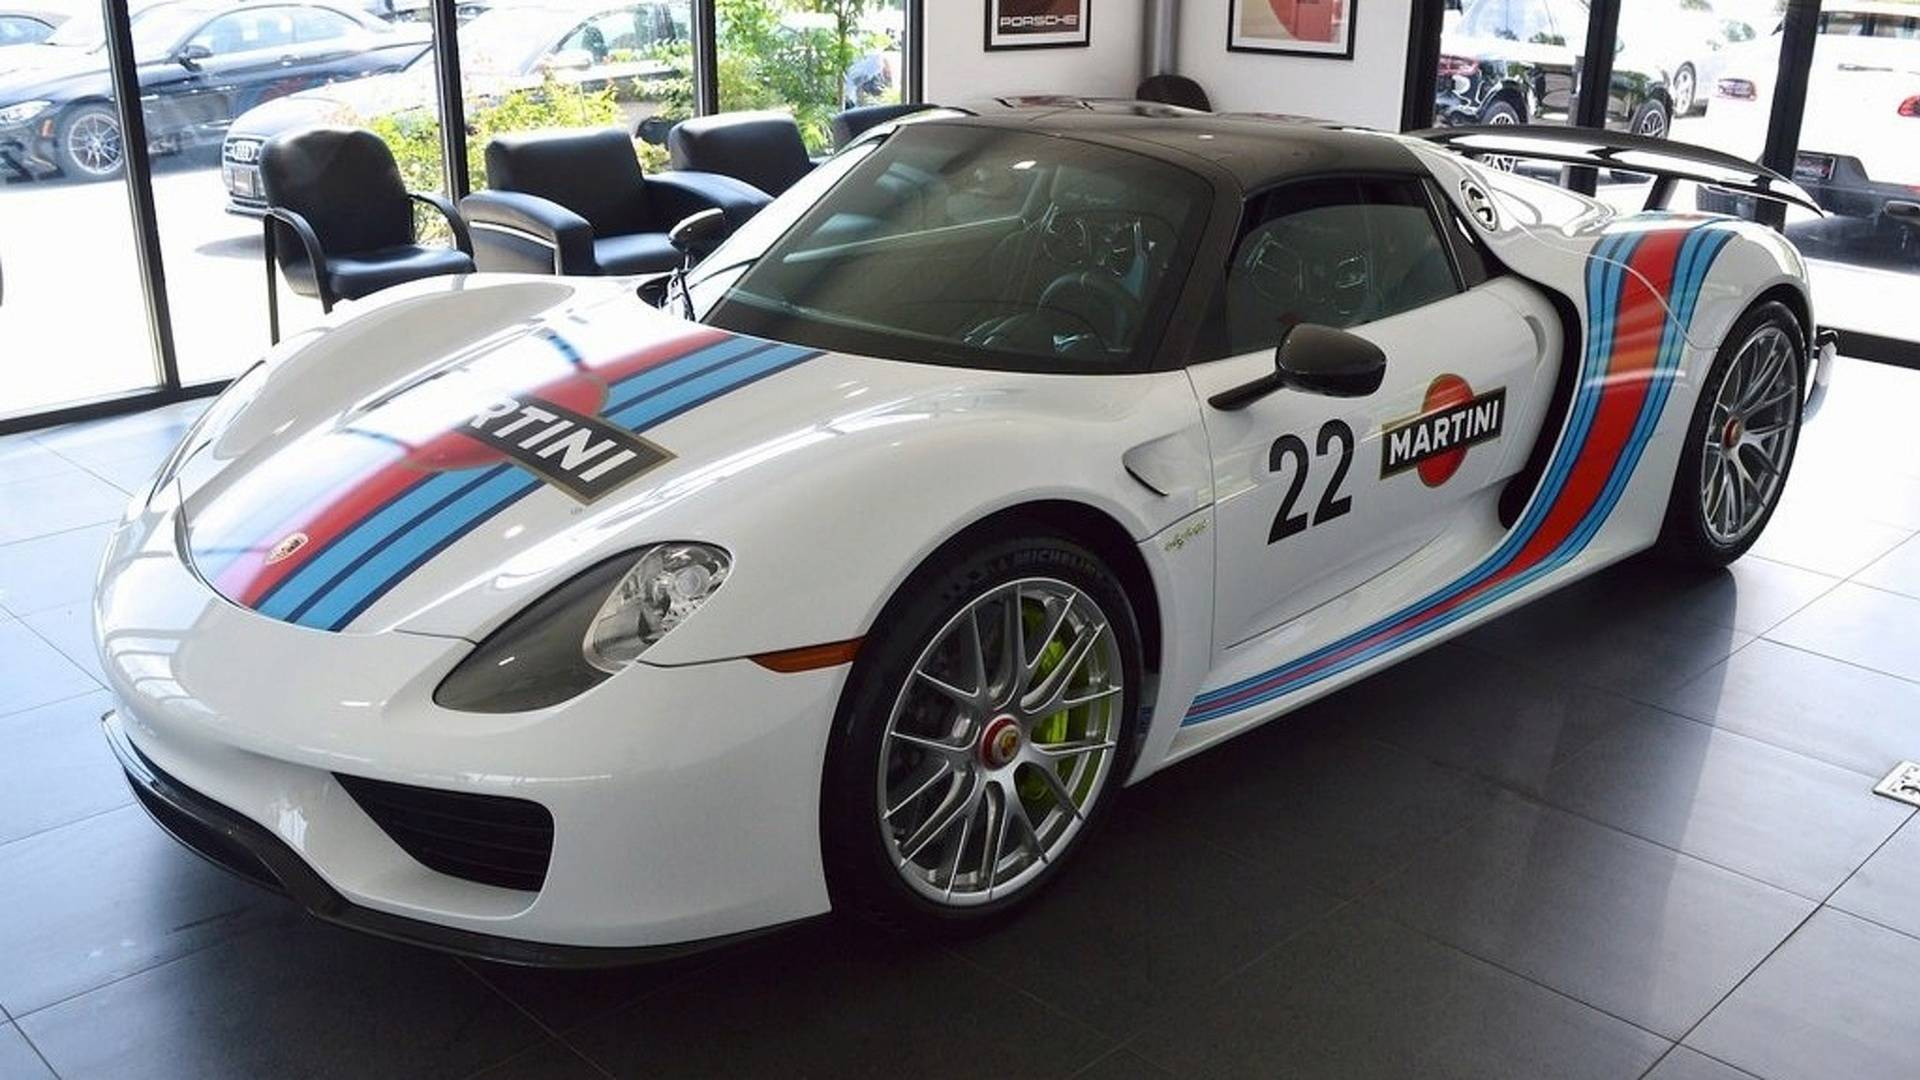 Take Home This 45 Mile Porsche 918 Weissach For A Cool 22 Million